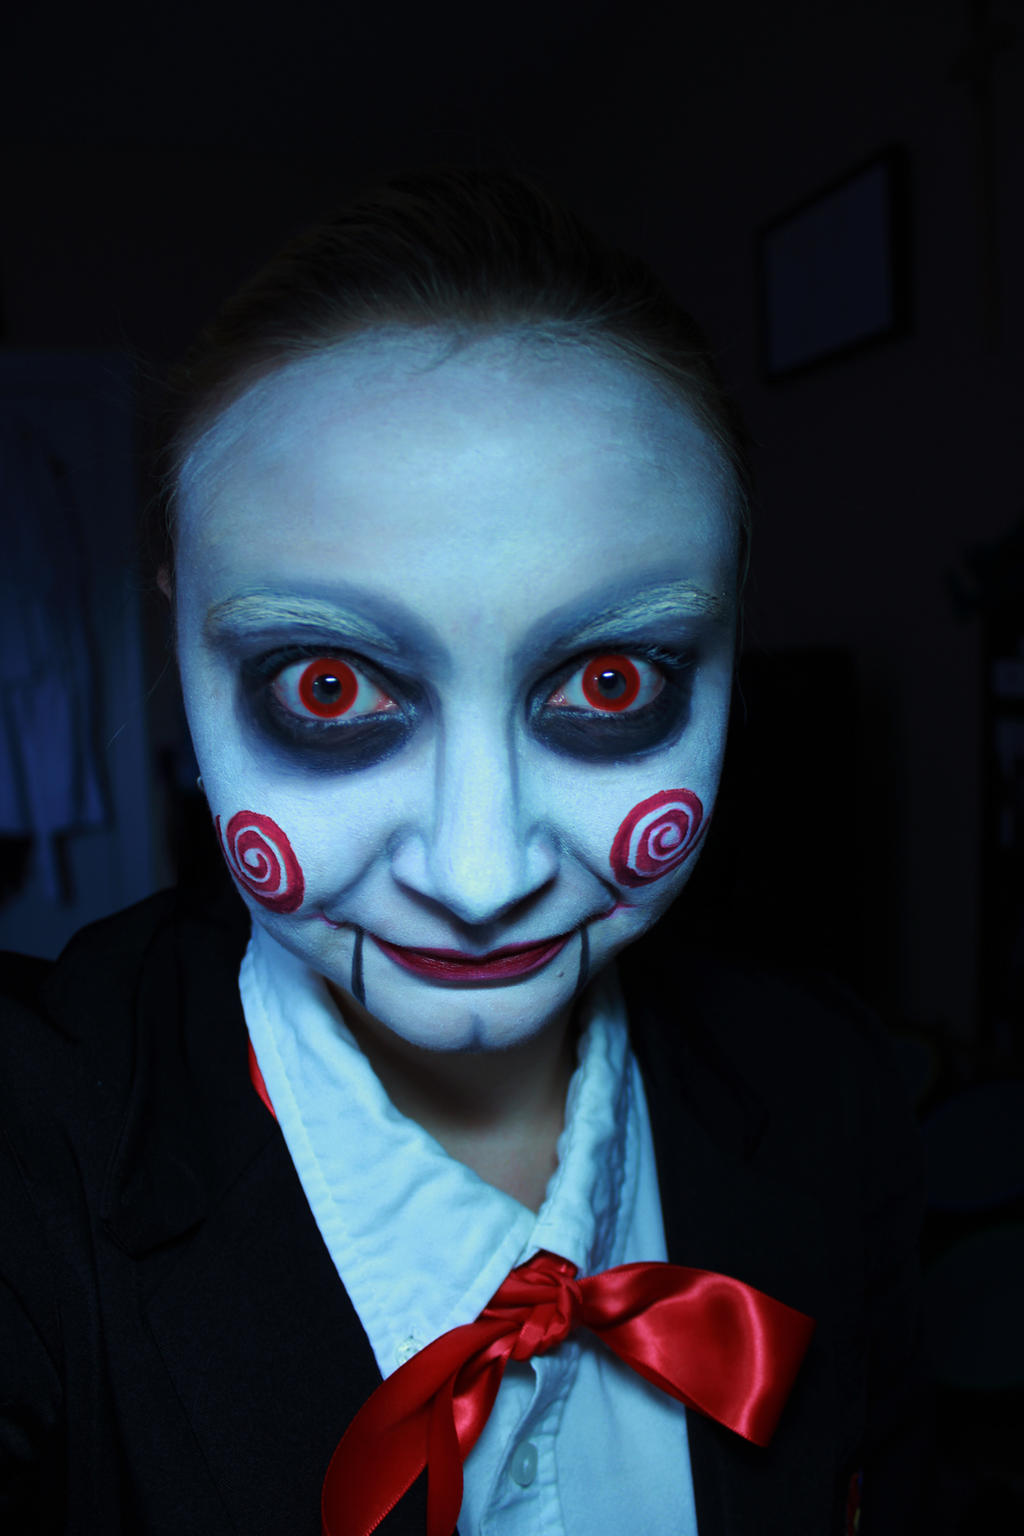 #4 Jigsaw by photographydollface on DeviantArt